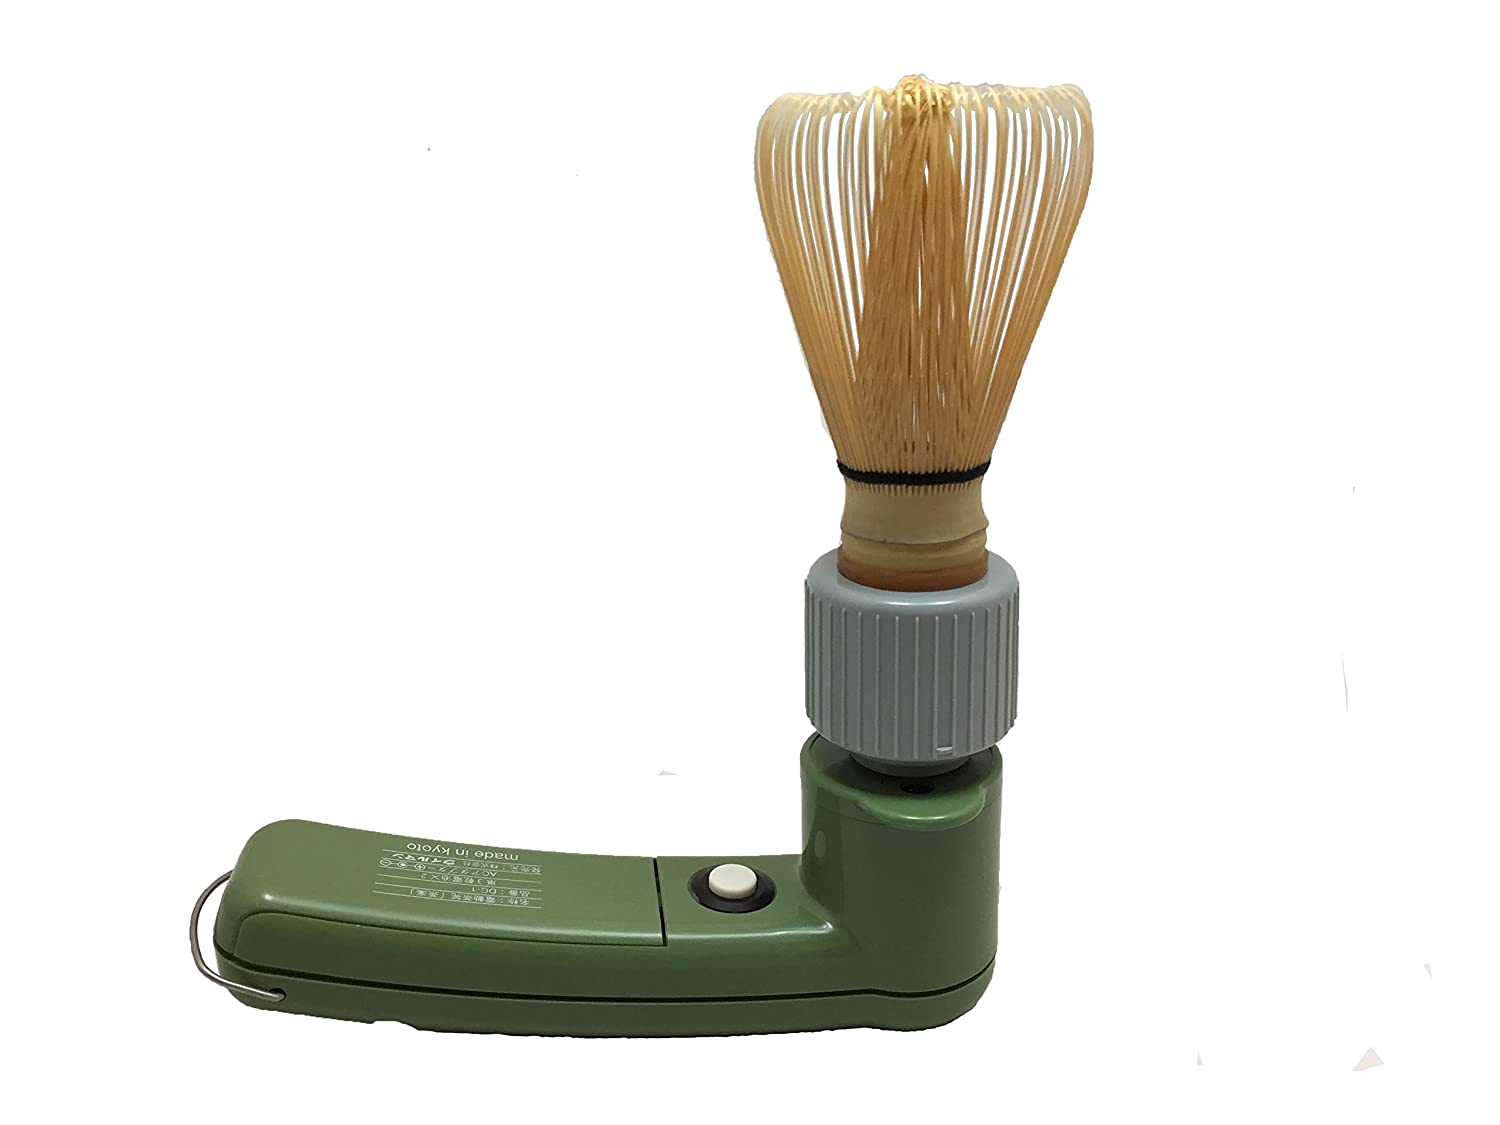 Japanese Handheld Electric Matcha Whisk//Frother with bamboo chasen Willman Charaku